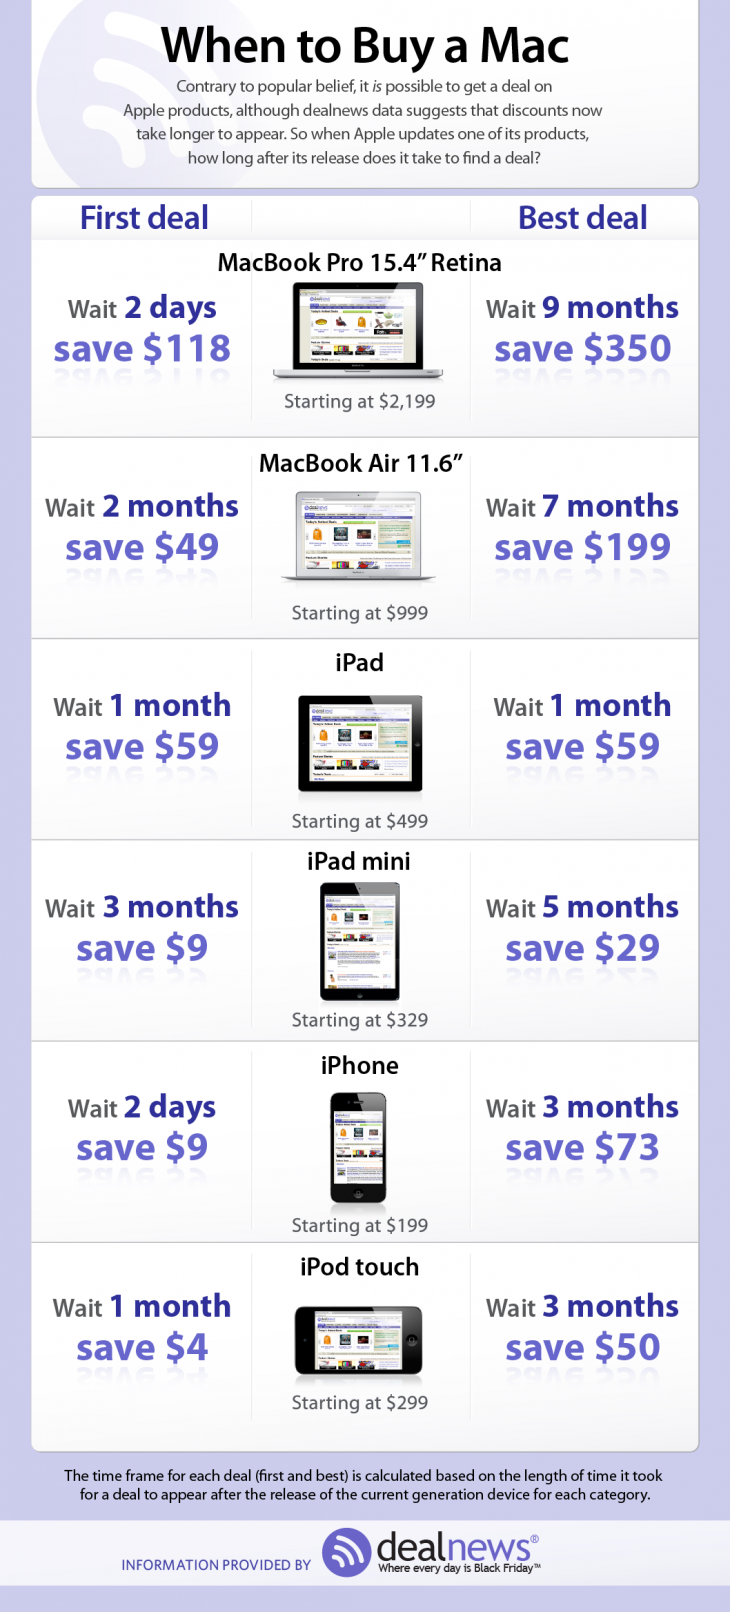 applepricetrends 730x1612 Curious when Apple products go on sale? This chart tracks when the first and best deals arrive